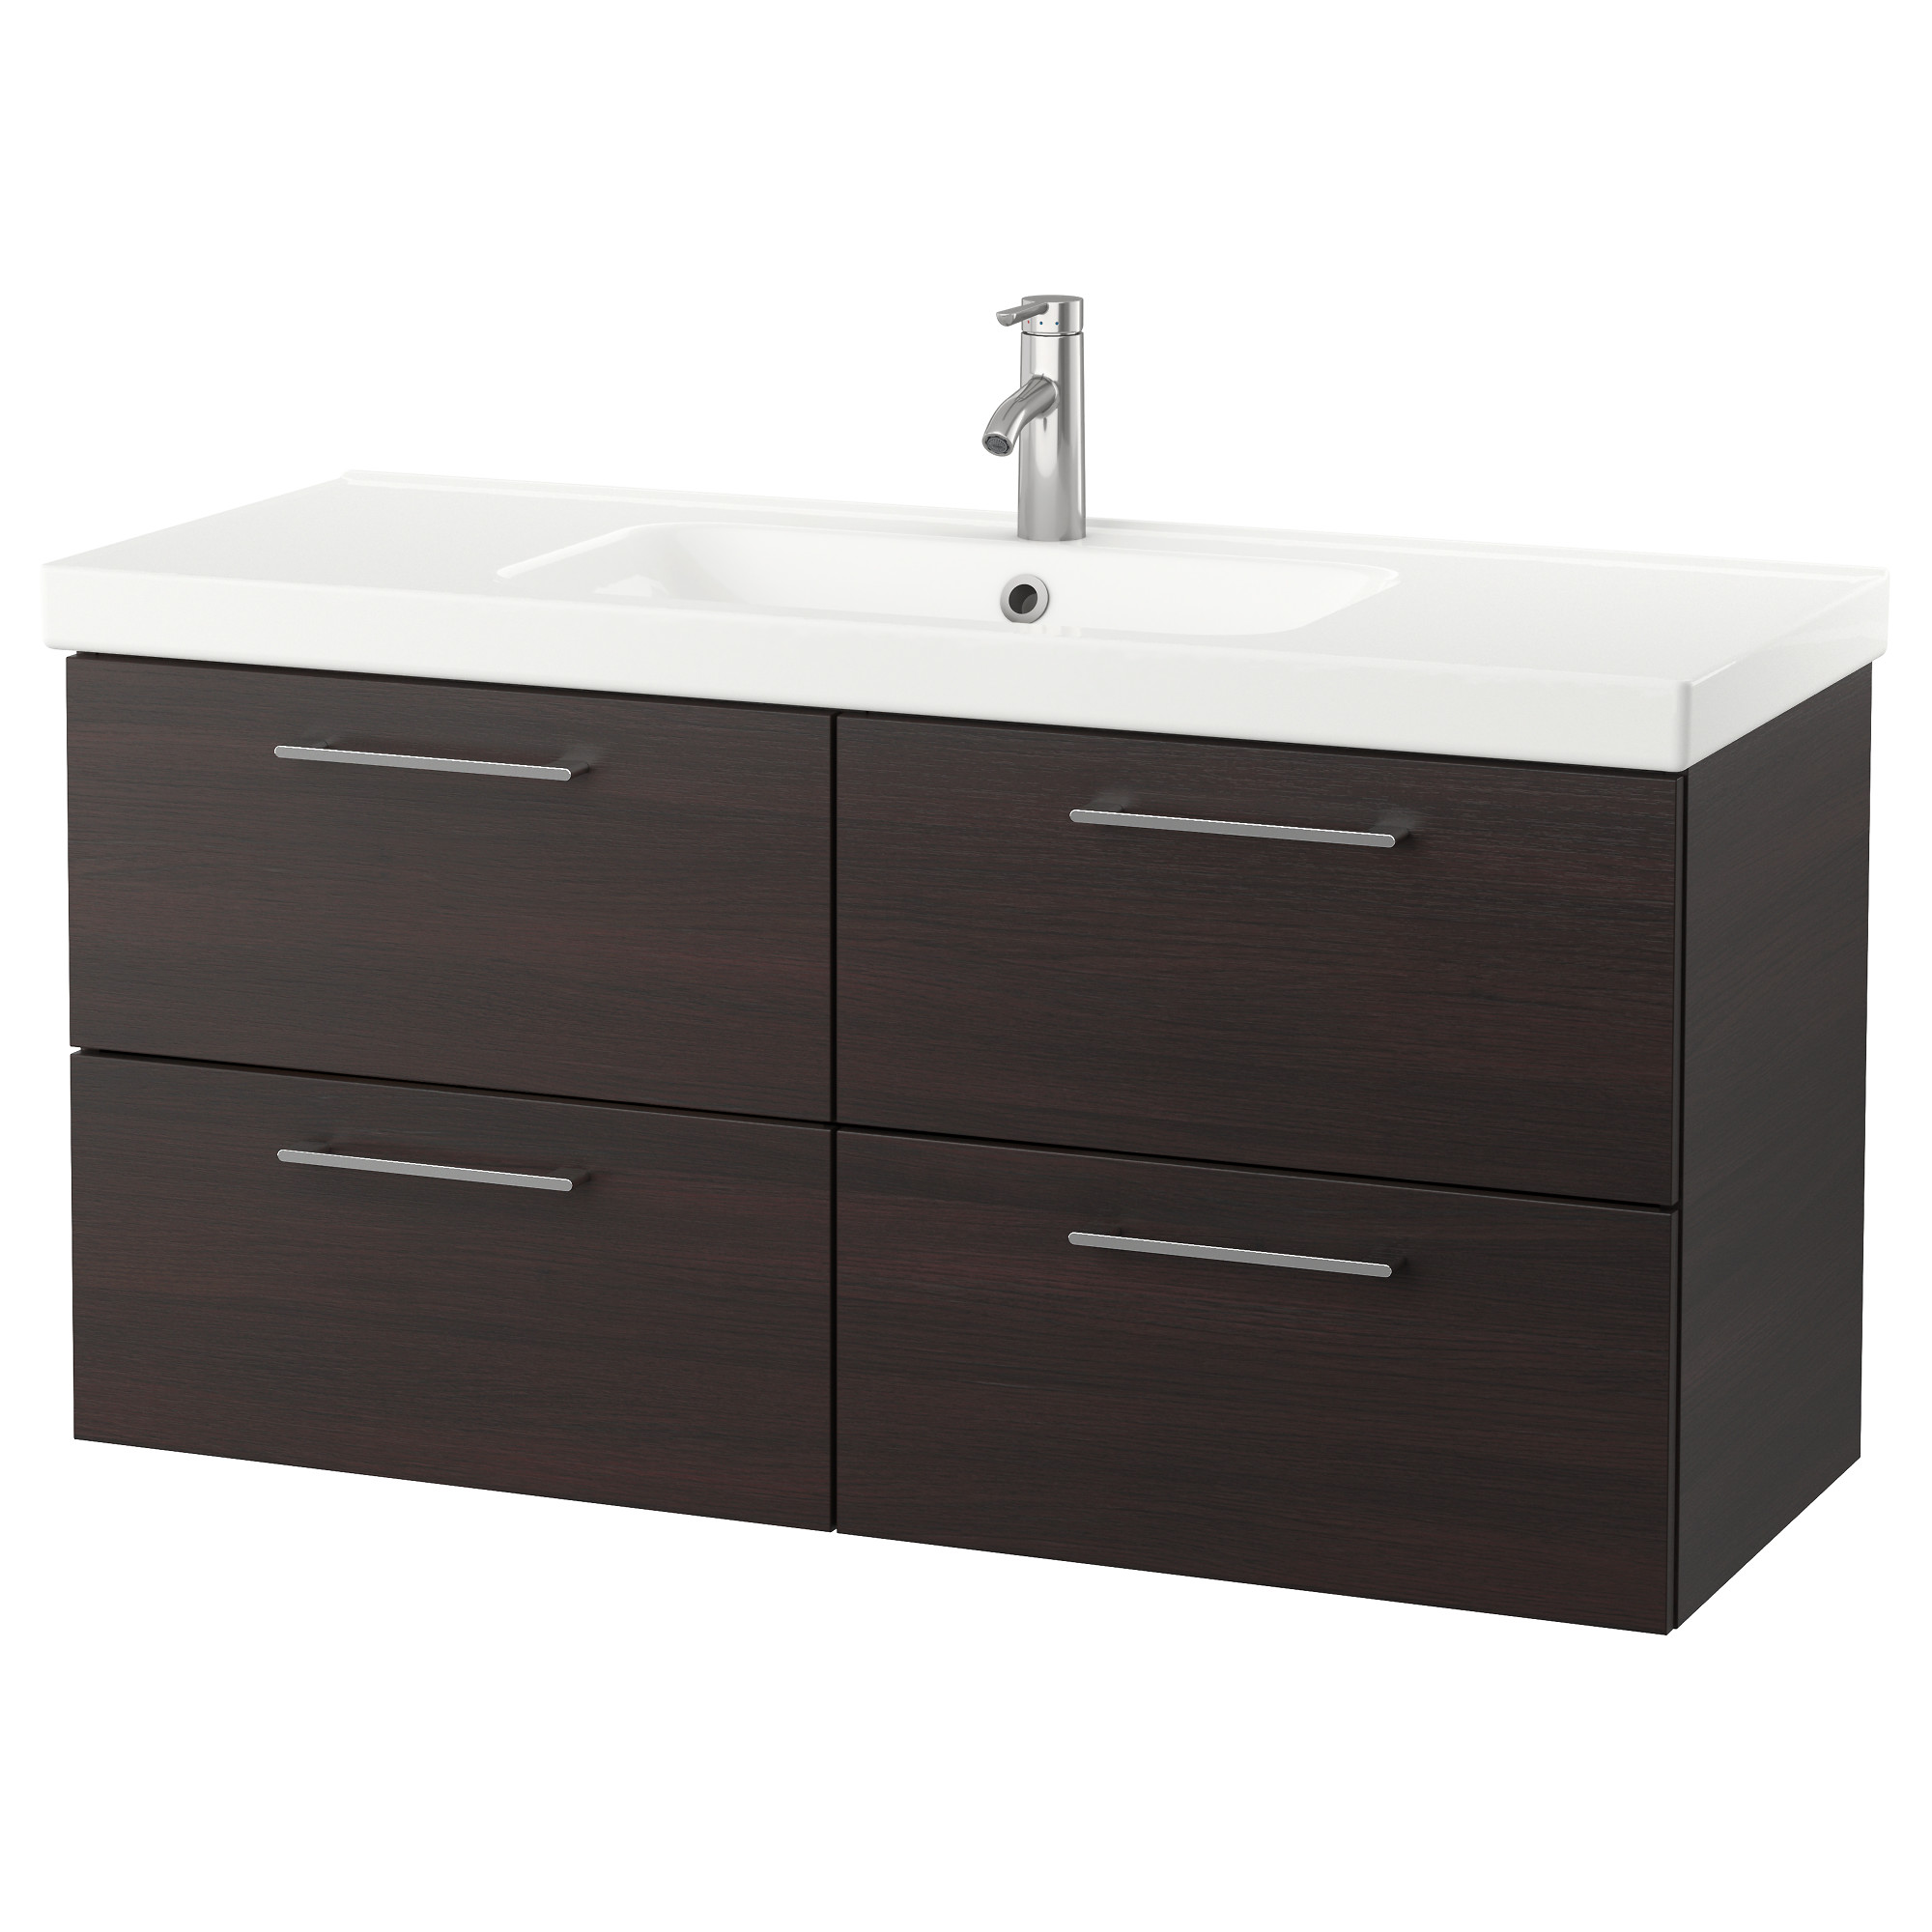 Godmorgon Odensvik Sink Cabinet With 4 Drawers High Gloss Gray  # Muebles Godmorgon Ikea